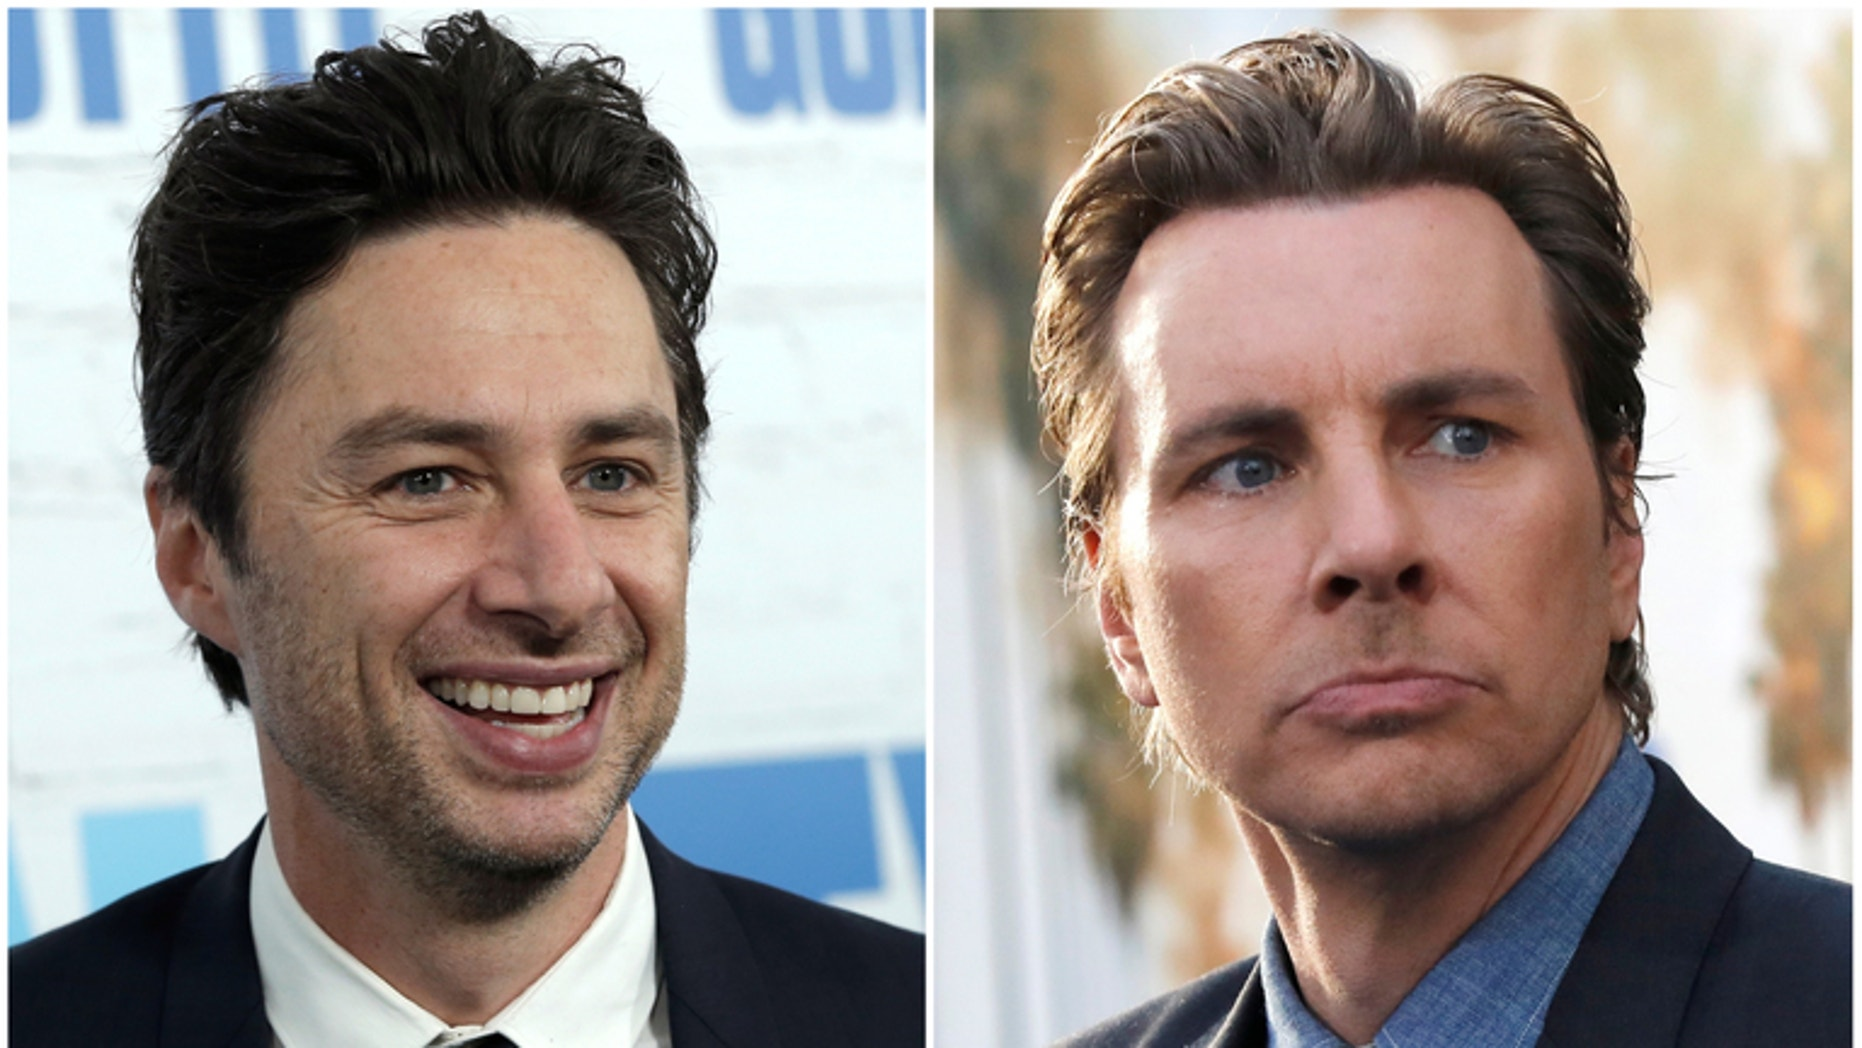 Zach Braff and Dax Shepard have always been a popular celebrity-doppelgänger duo